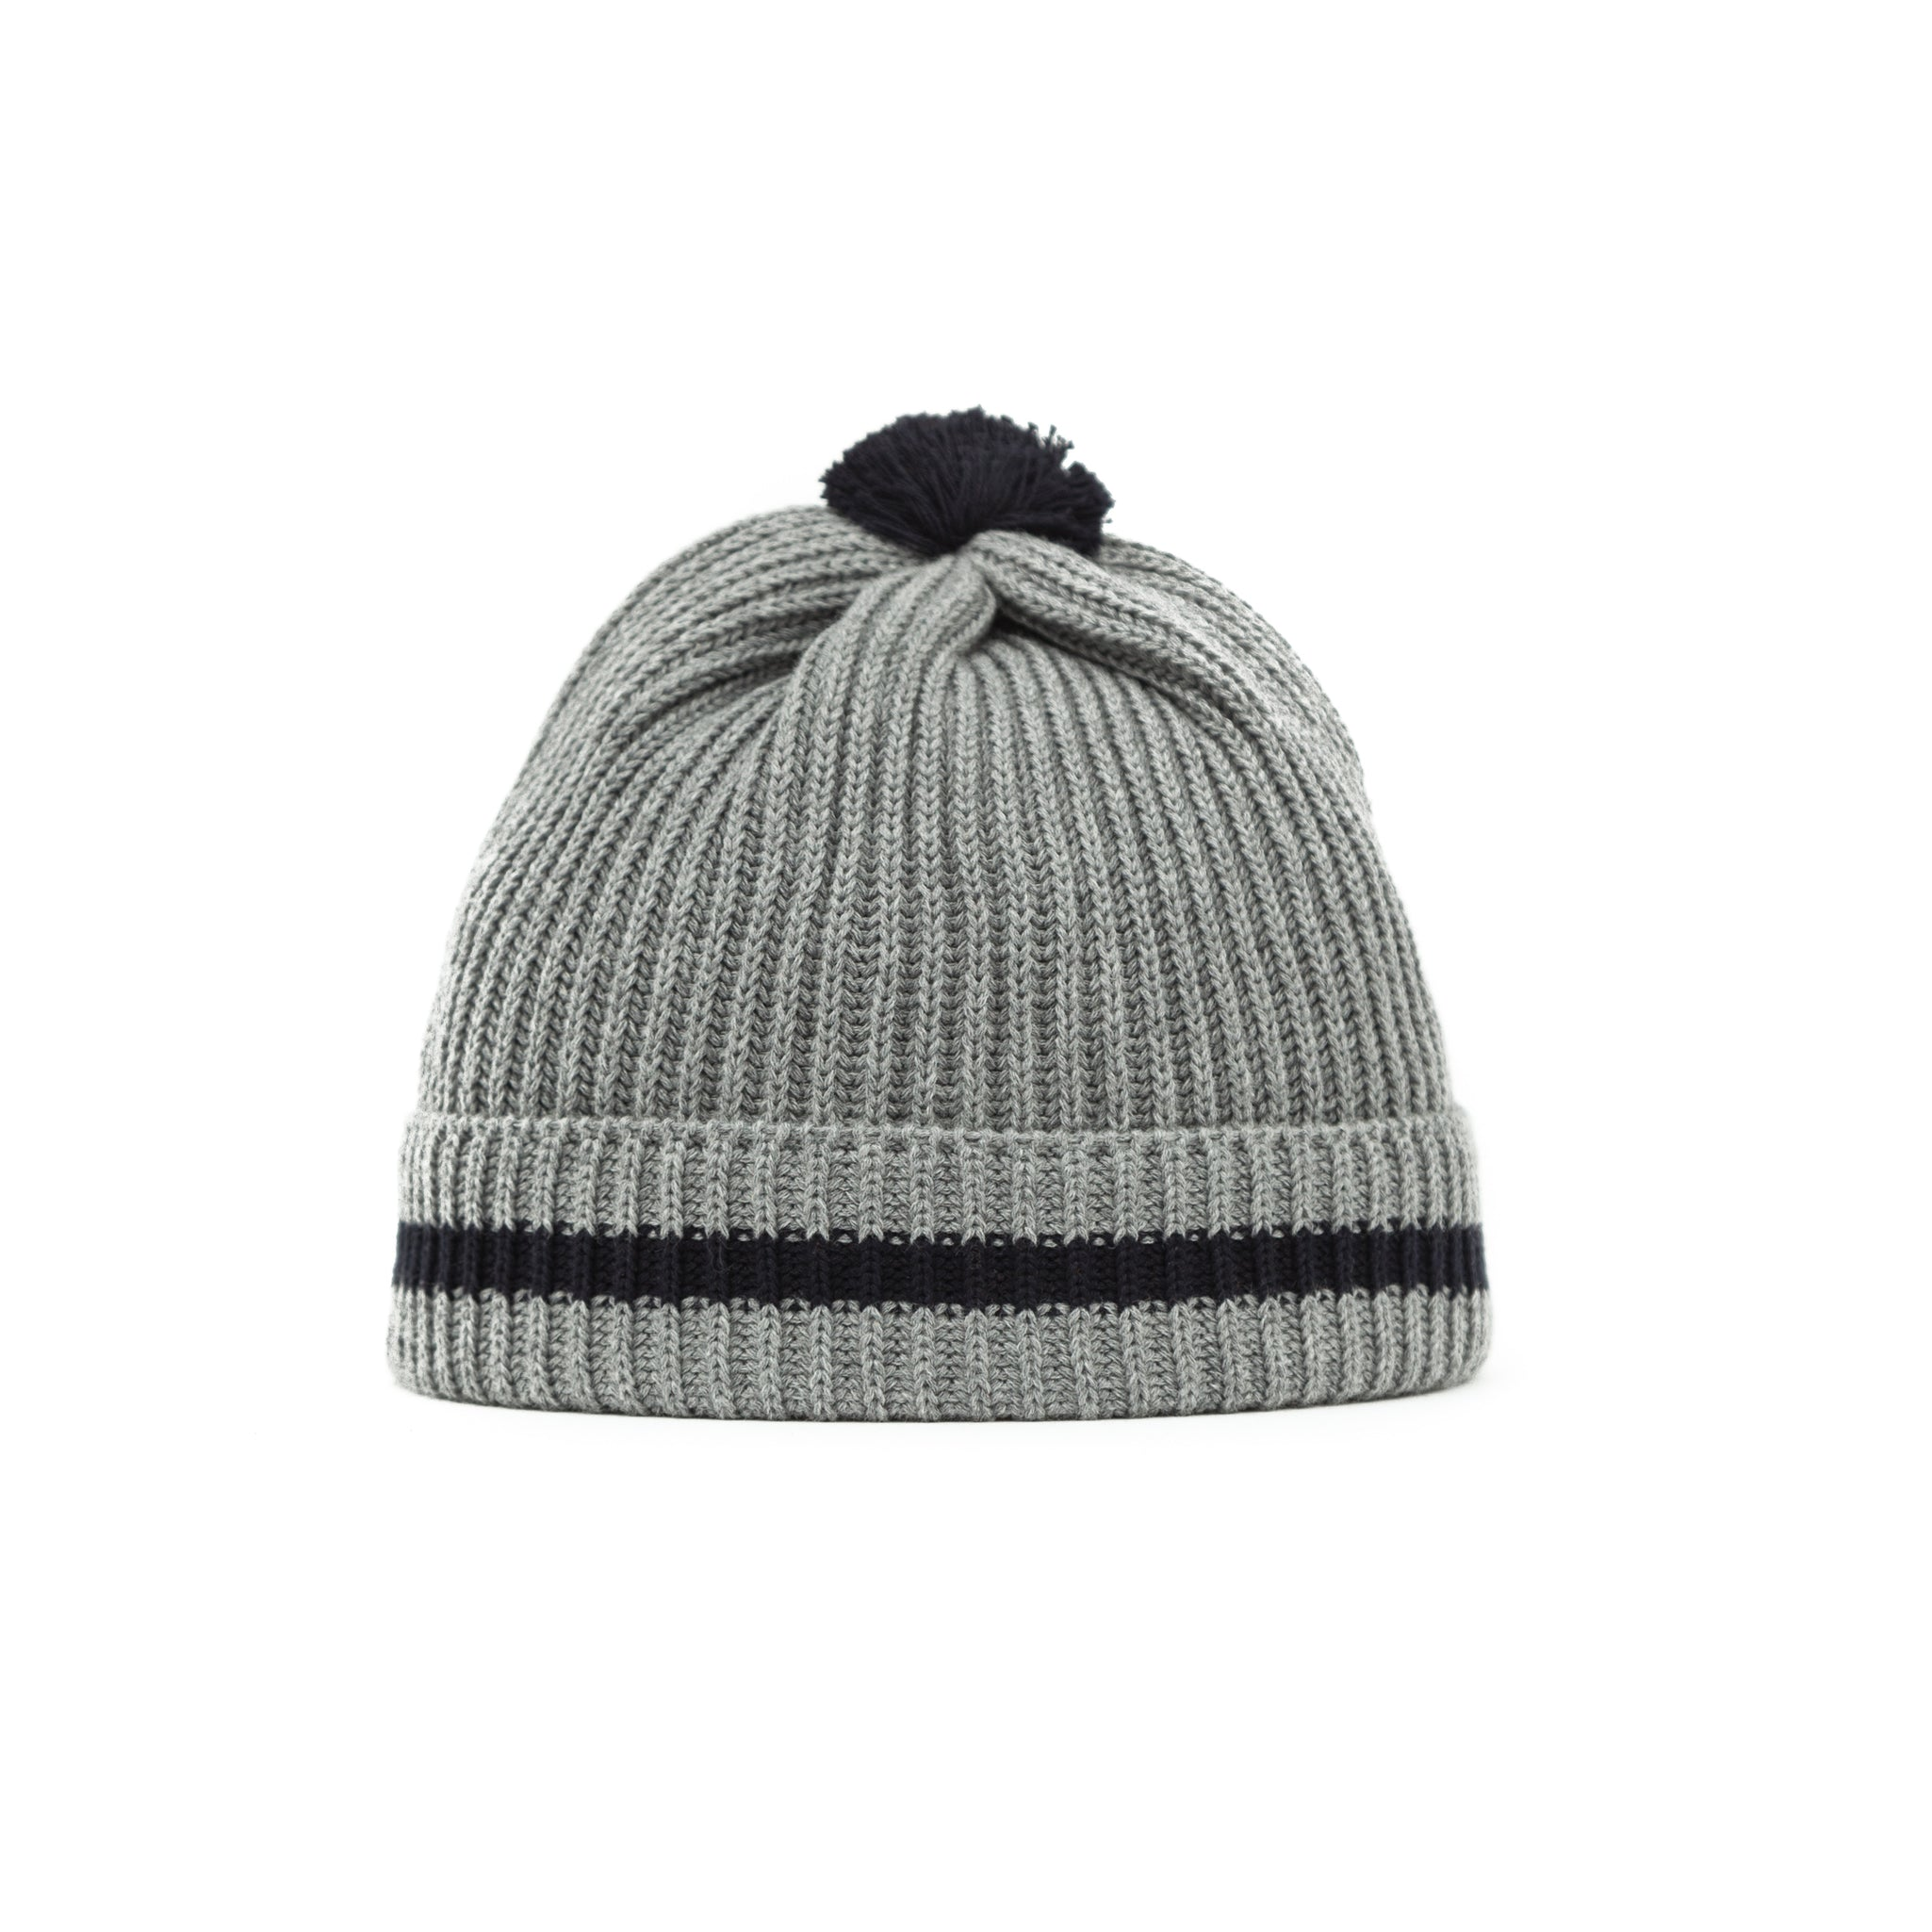 Cotton Knit Bobble Cap